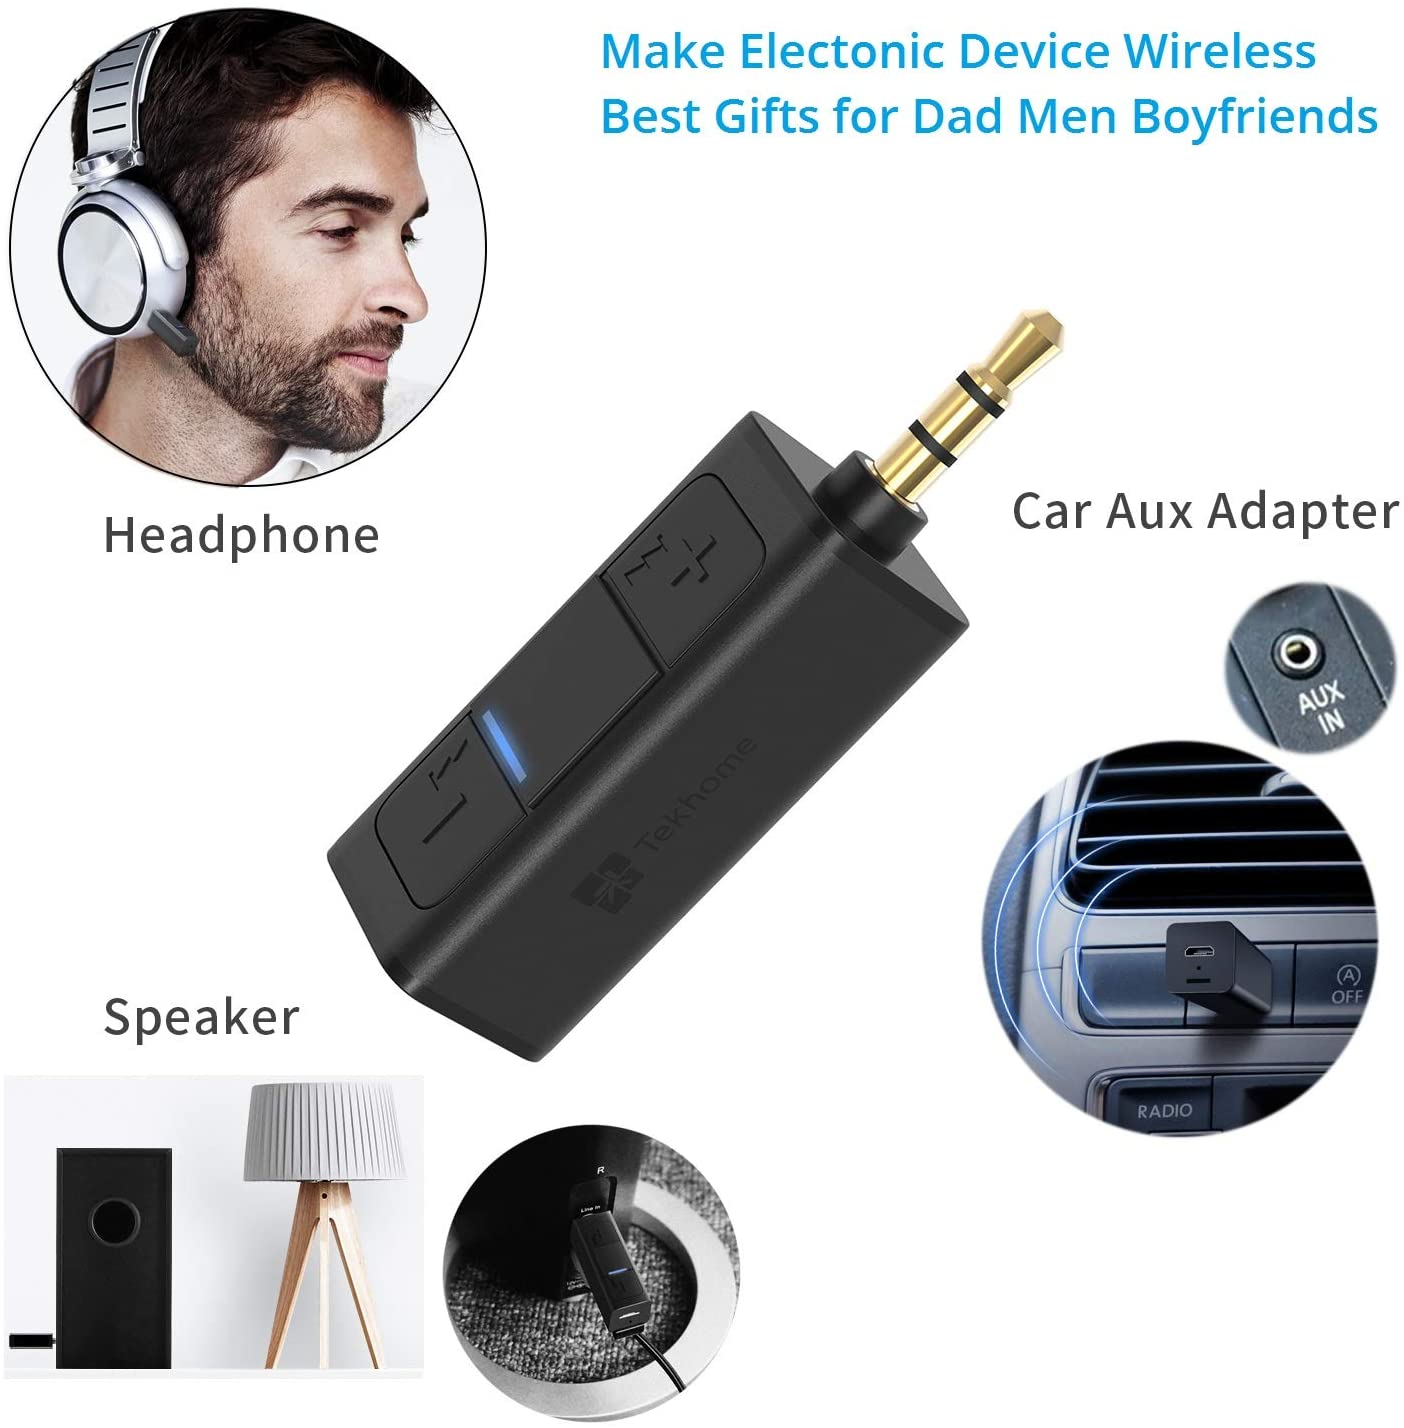 Bluetooth Receiver,TekHome Aux Bluetooth Adapter for Car, Mini Small Bluetooth Receiver for Home Stereo Speaker,Useful Gifts for Men Dad Boyfriend Husband.: Electronics